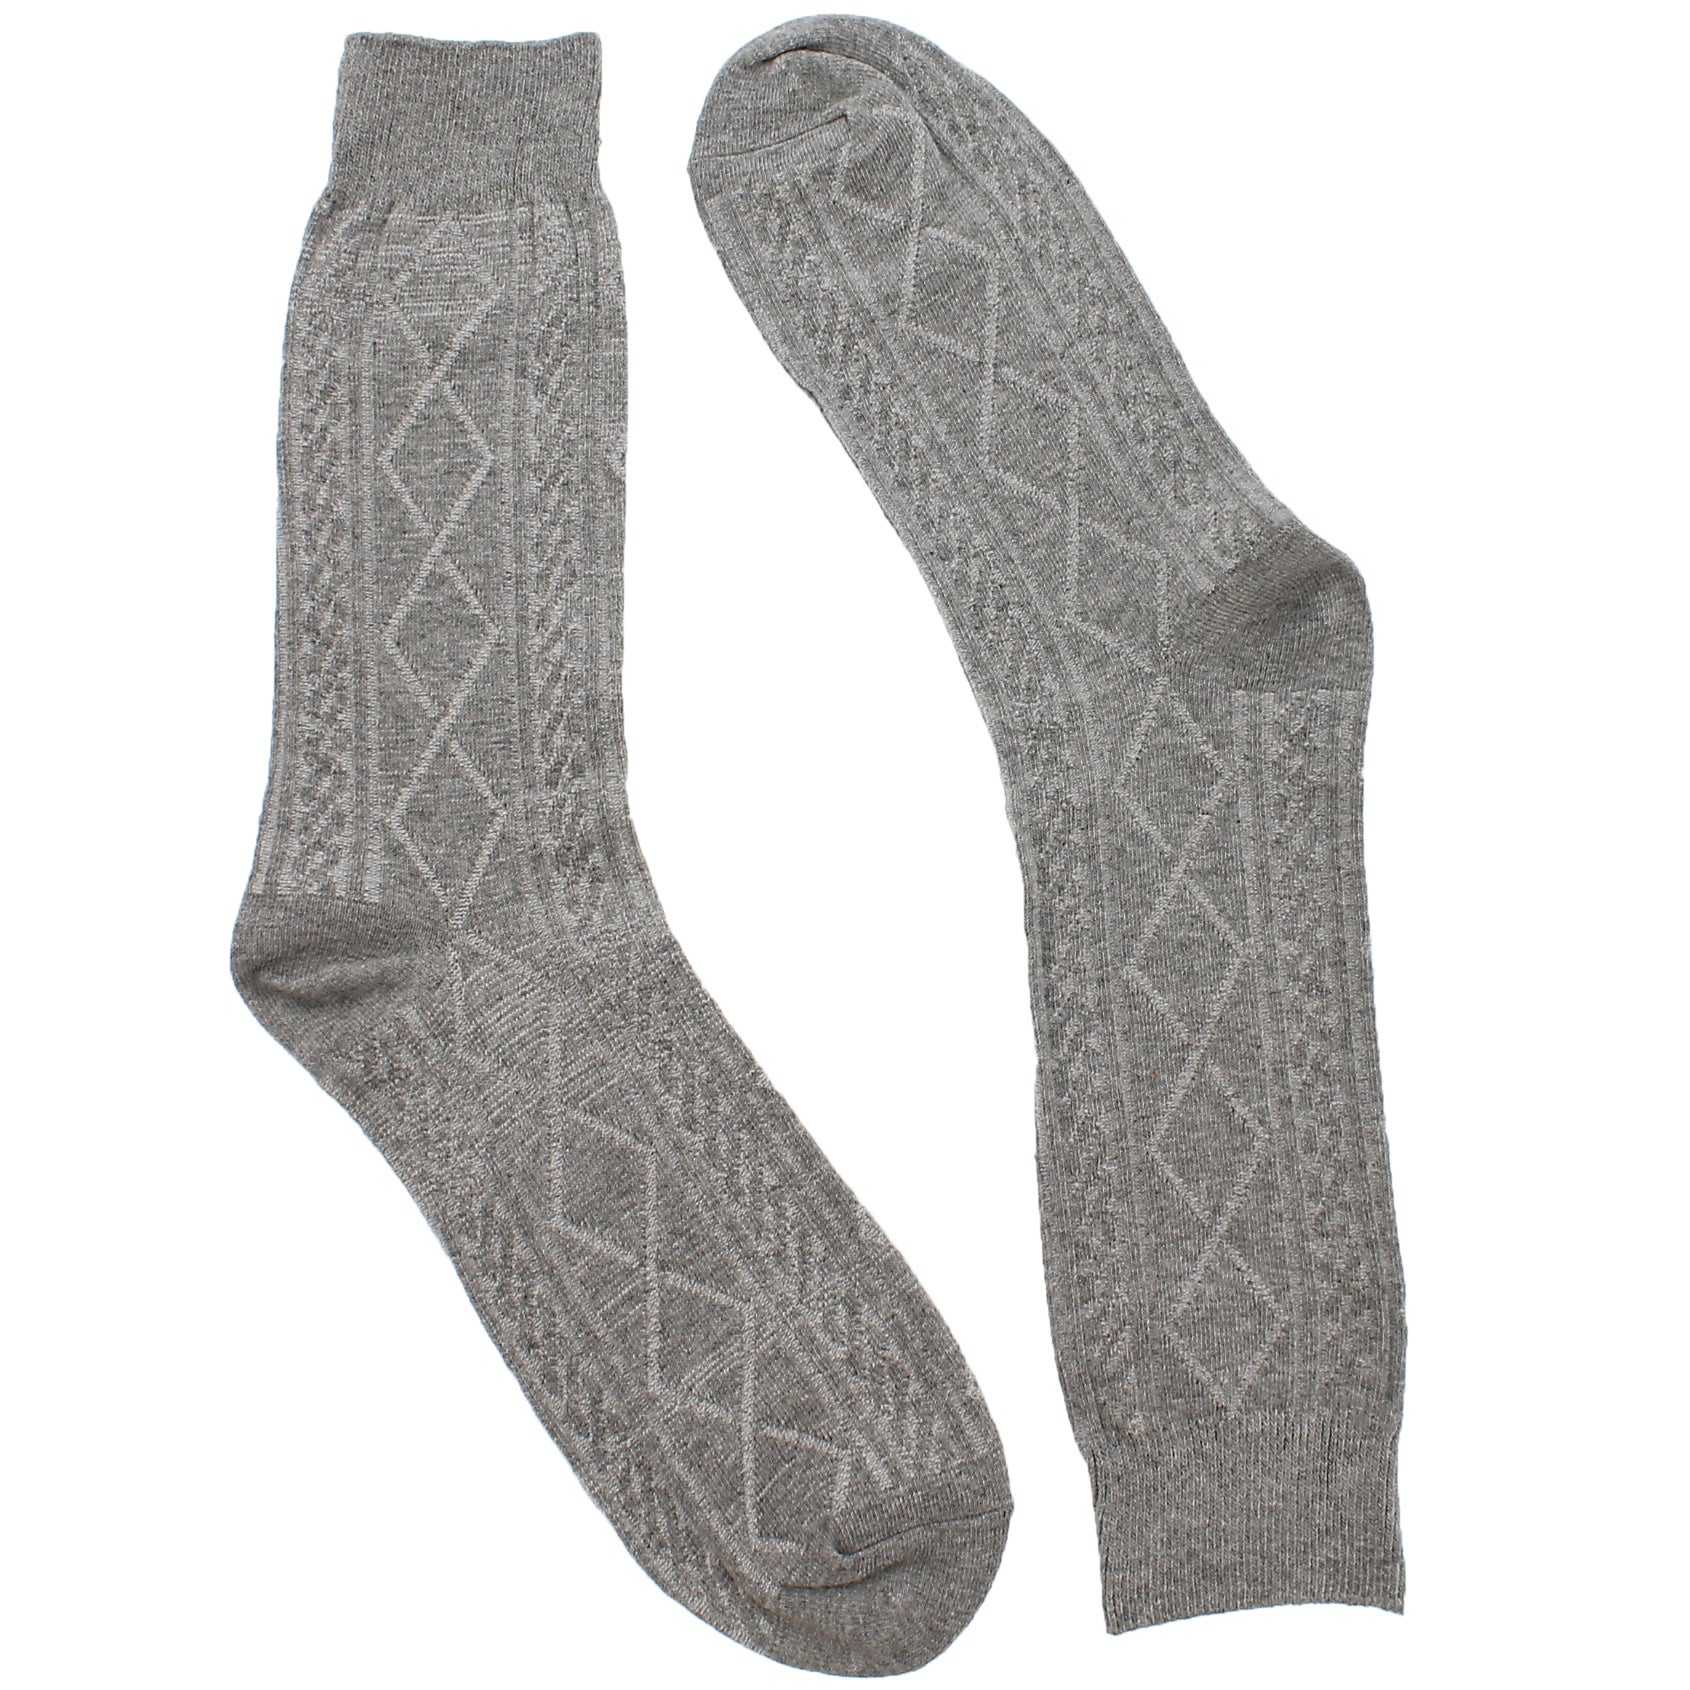 Mns Cable 2 Ply Crew grey sock 1 pk